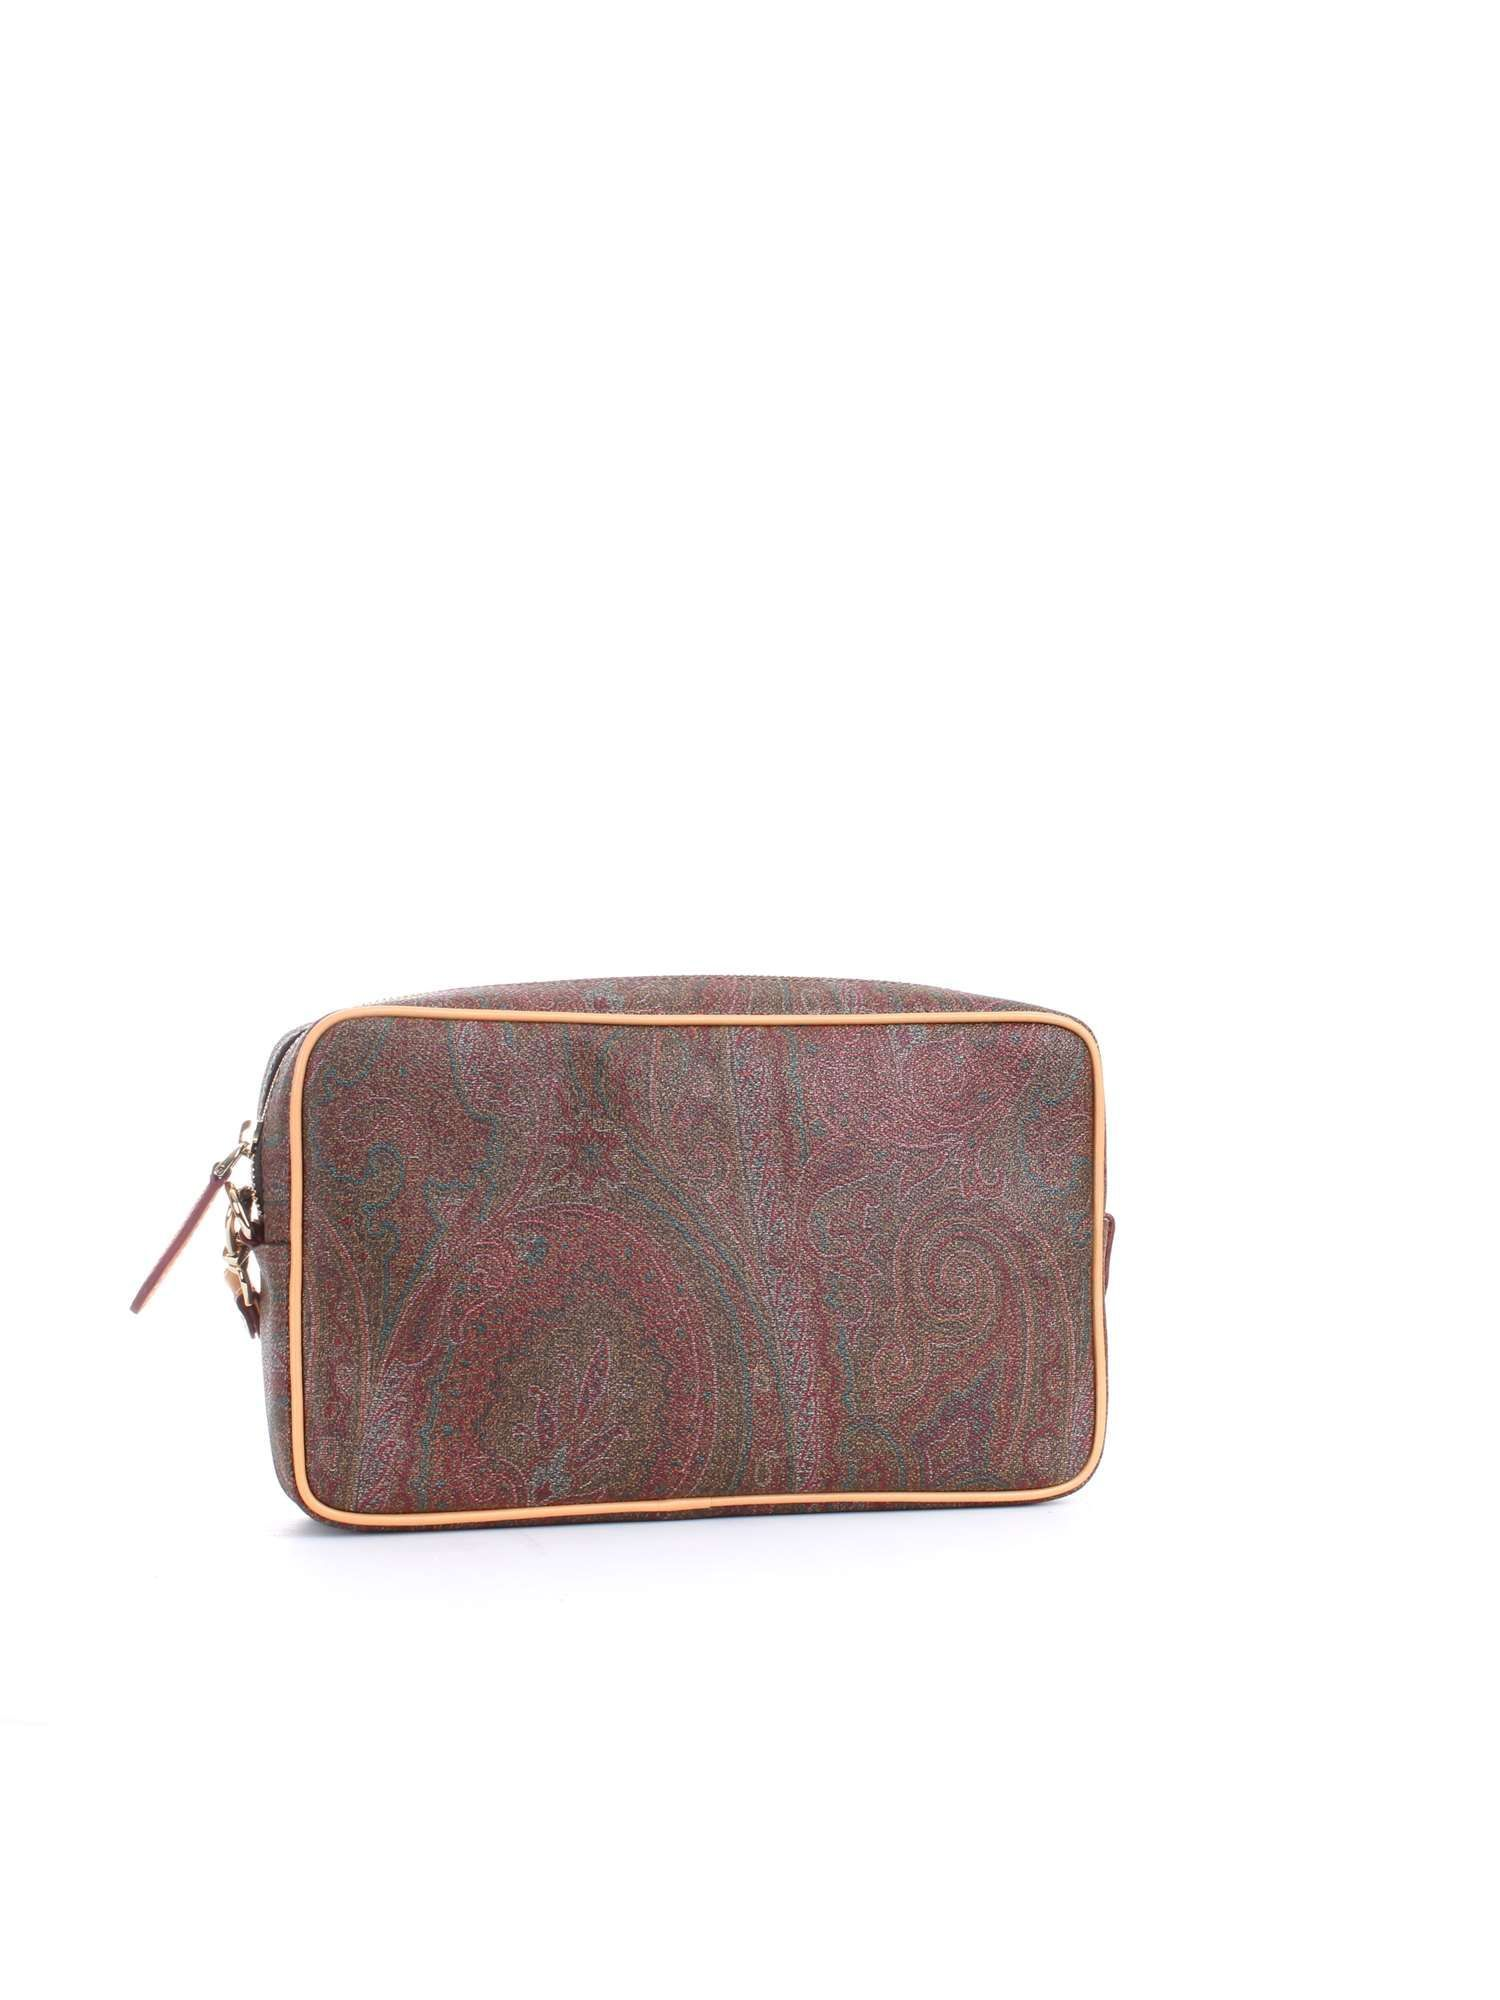 ETRO MEN'S 0H7688007600 MULTICOLOR FAUX LEATHER BEAUTY CASE